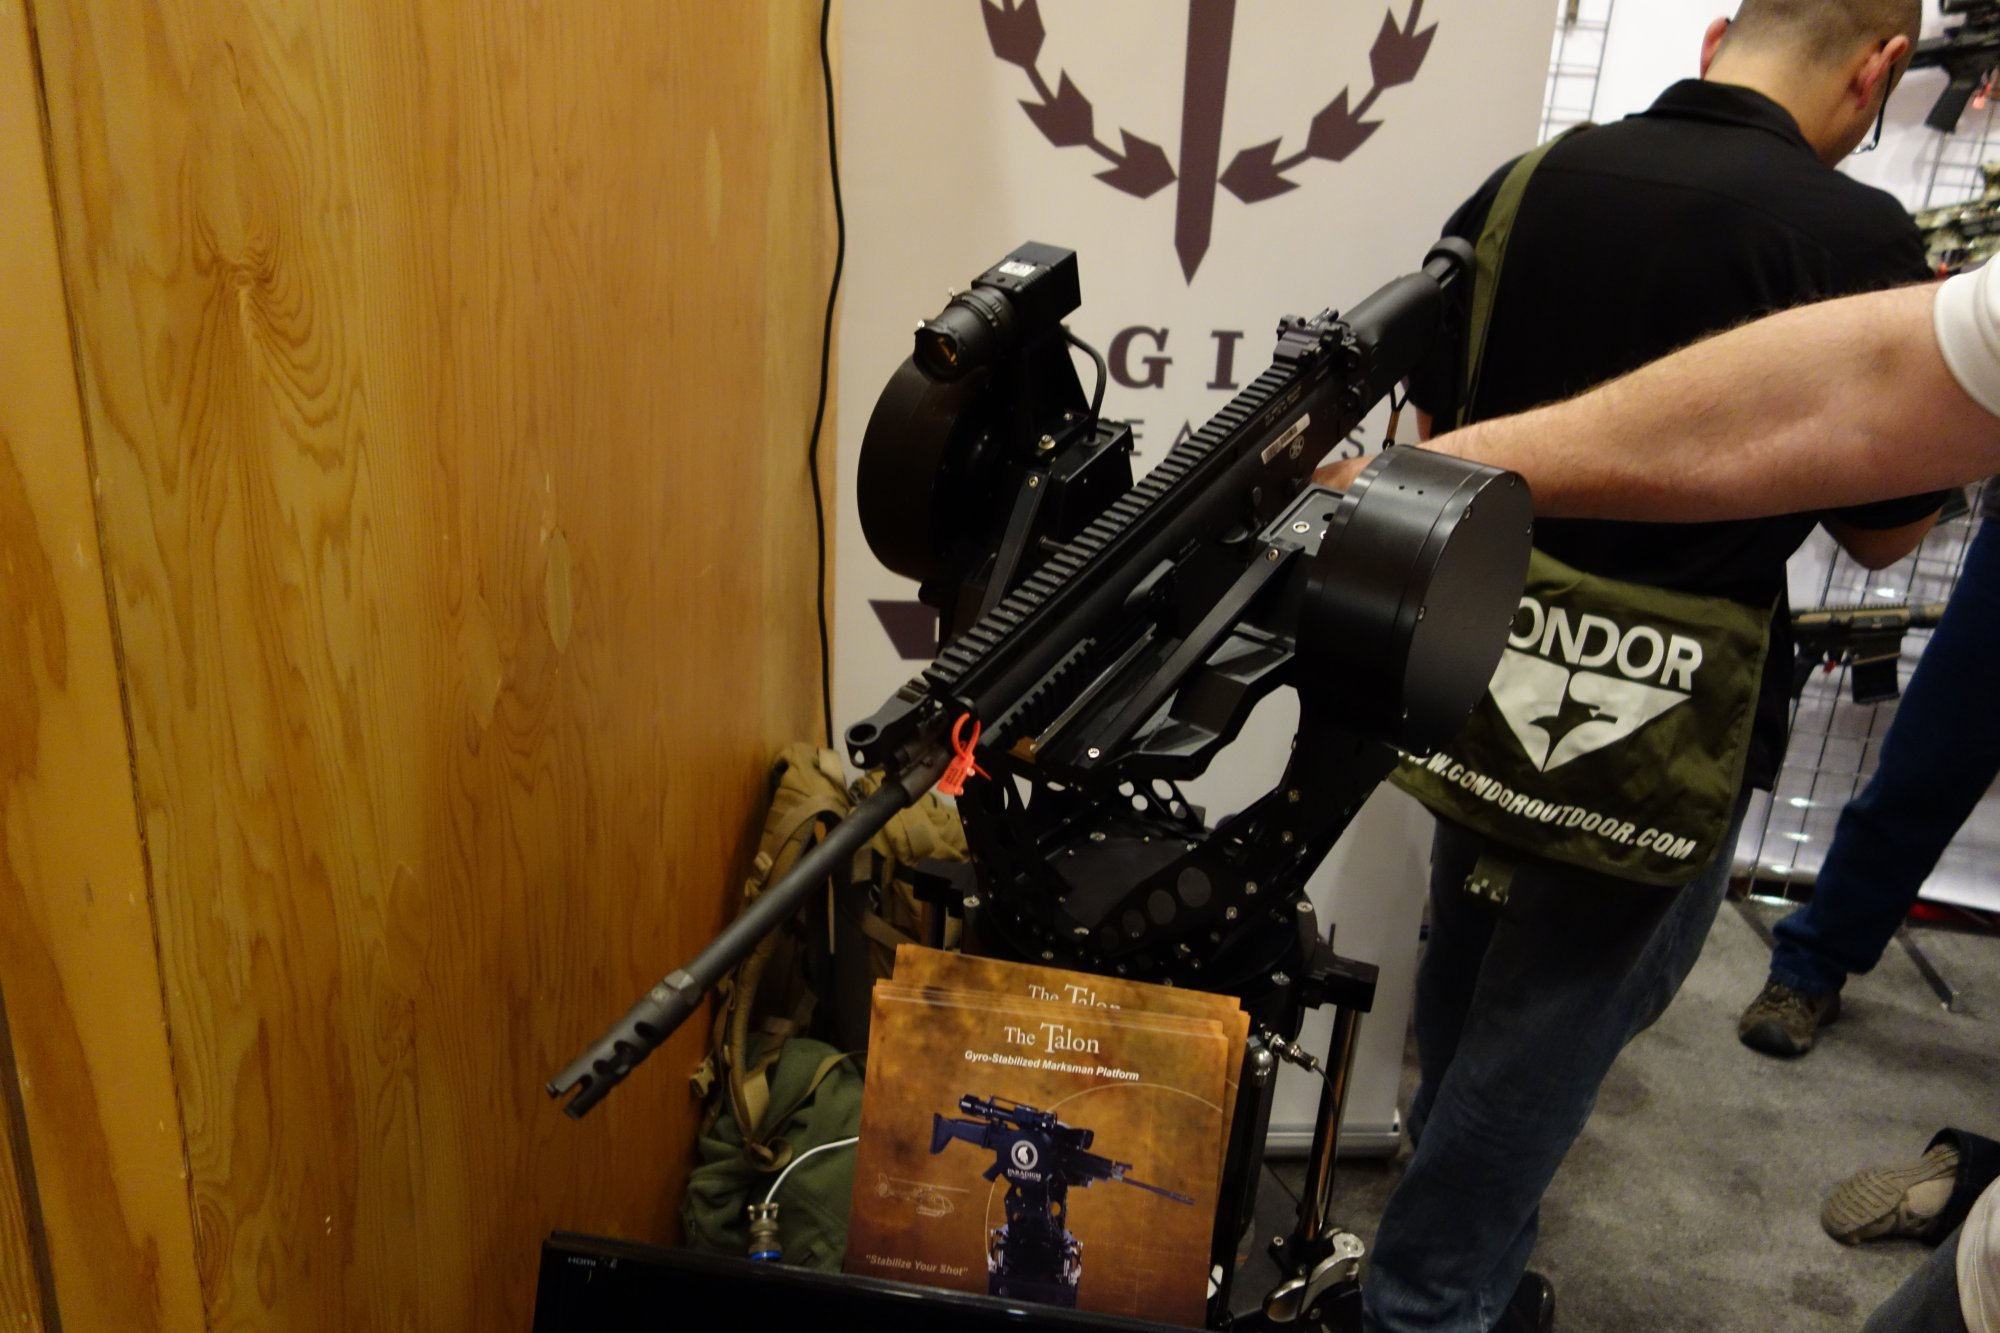 Paradigm SRP Talon Gyro-Stabilized Marksman Platform/Universal Weapons Mount (GSMP/UWM): Gun Mount for Sniping while Moving…Fast (Video!)